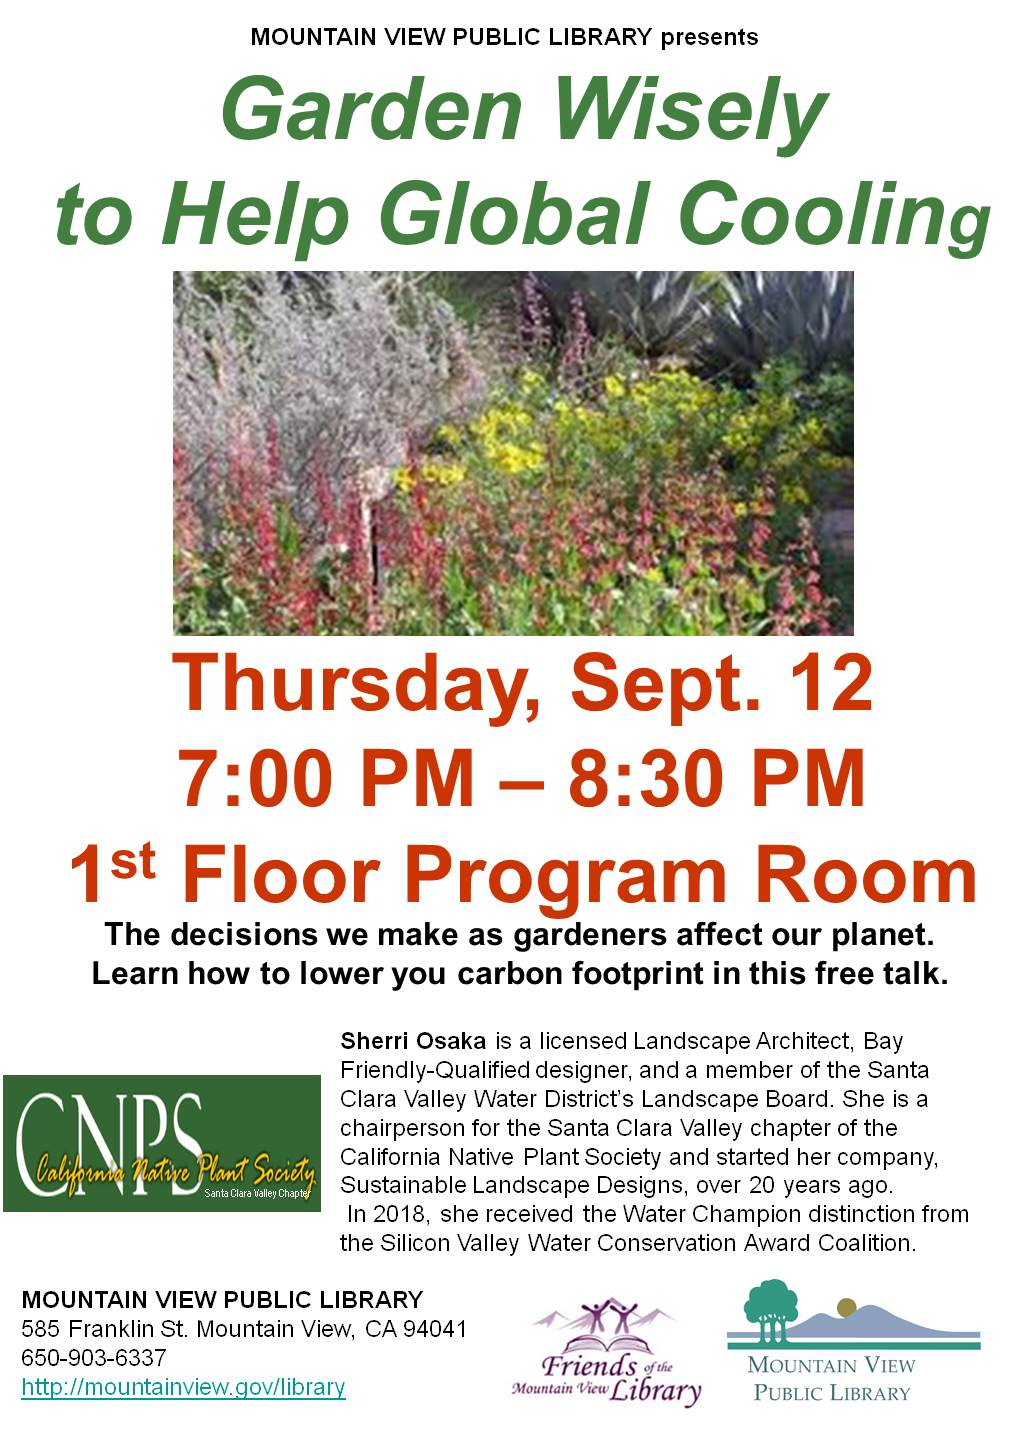 California Native Plant Society: Garden Wisely to Help Global Cooling